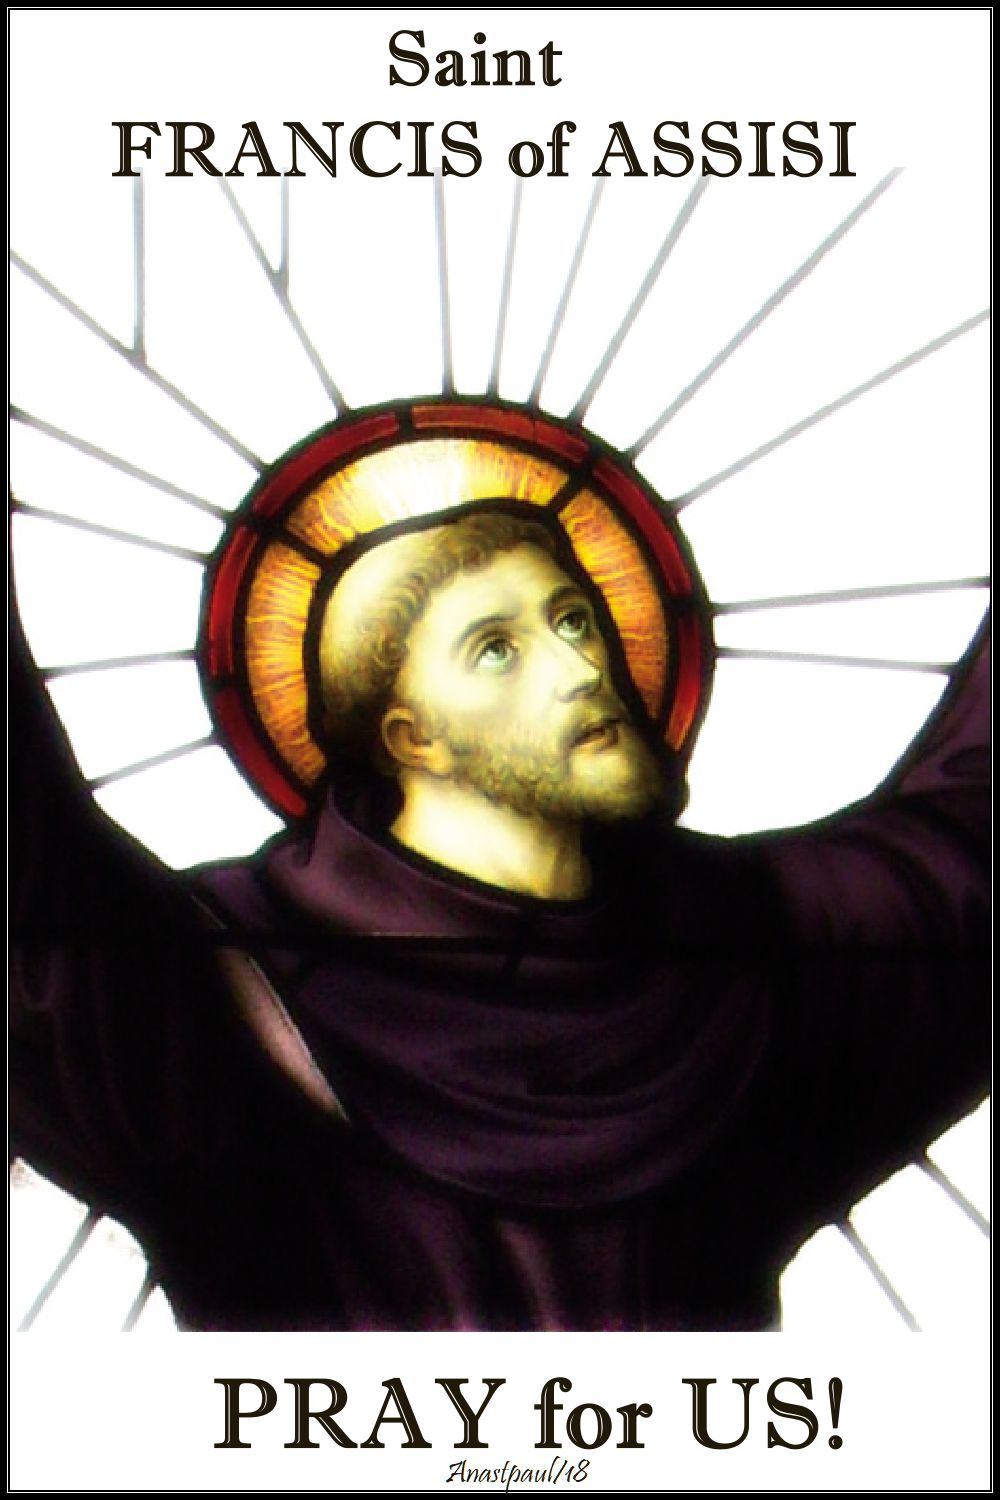 st francis of assisi pray for us - 4 oct 2018